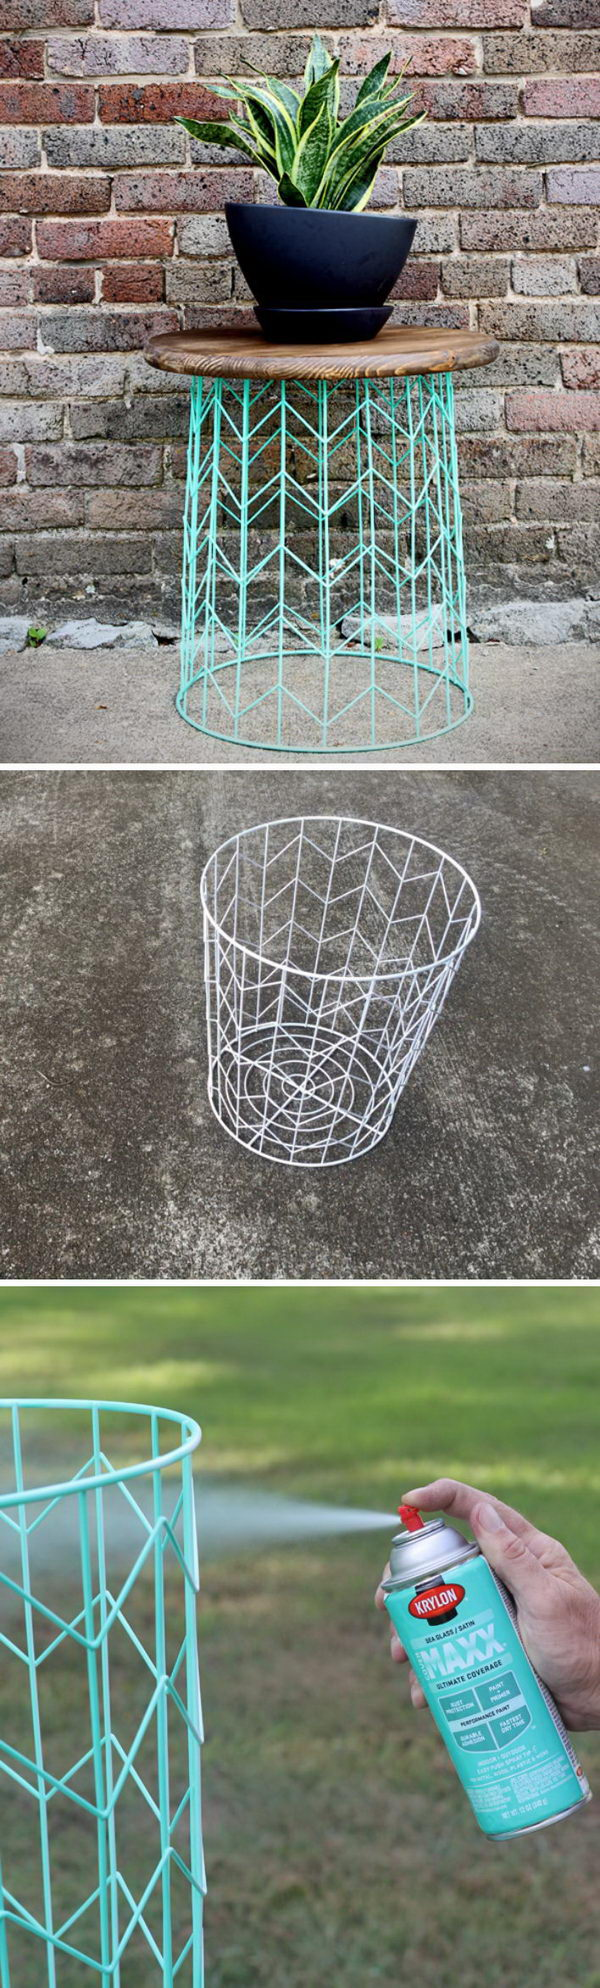 awesome diy side table ideas for outdoors and indoors hative tutorials accent with baskets wire basket beach cottage decor futon covers target hooker end tables lamps usb inch